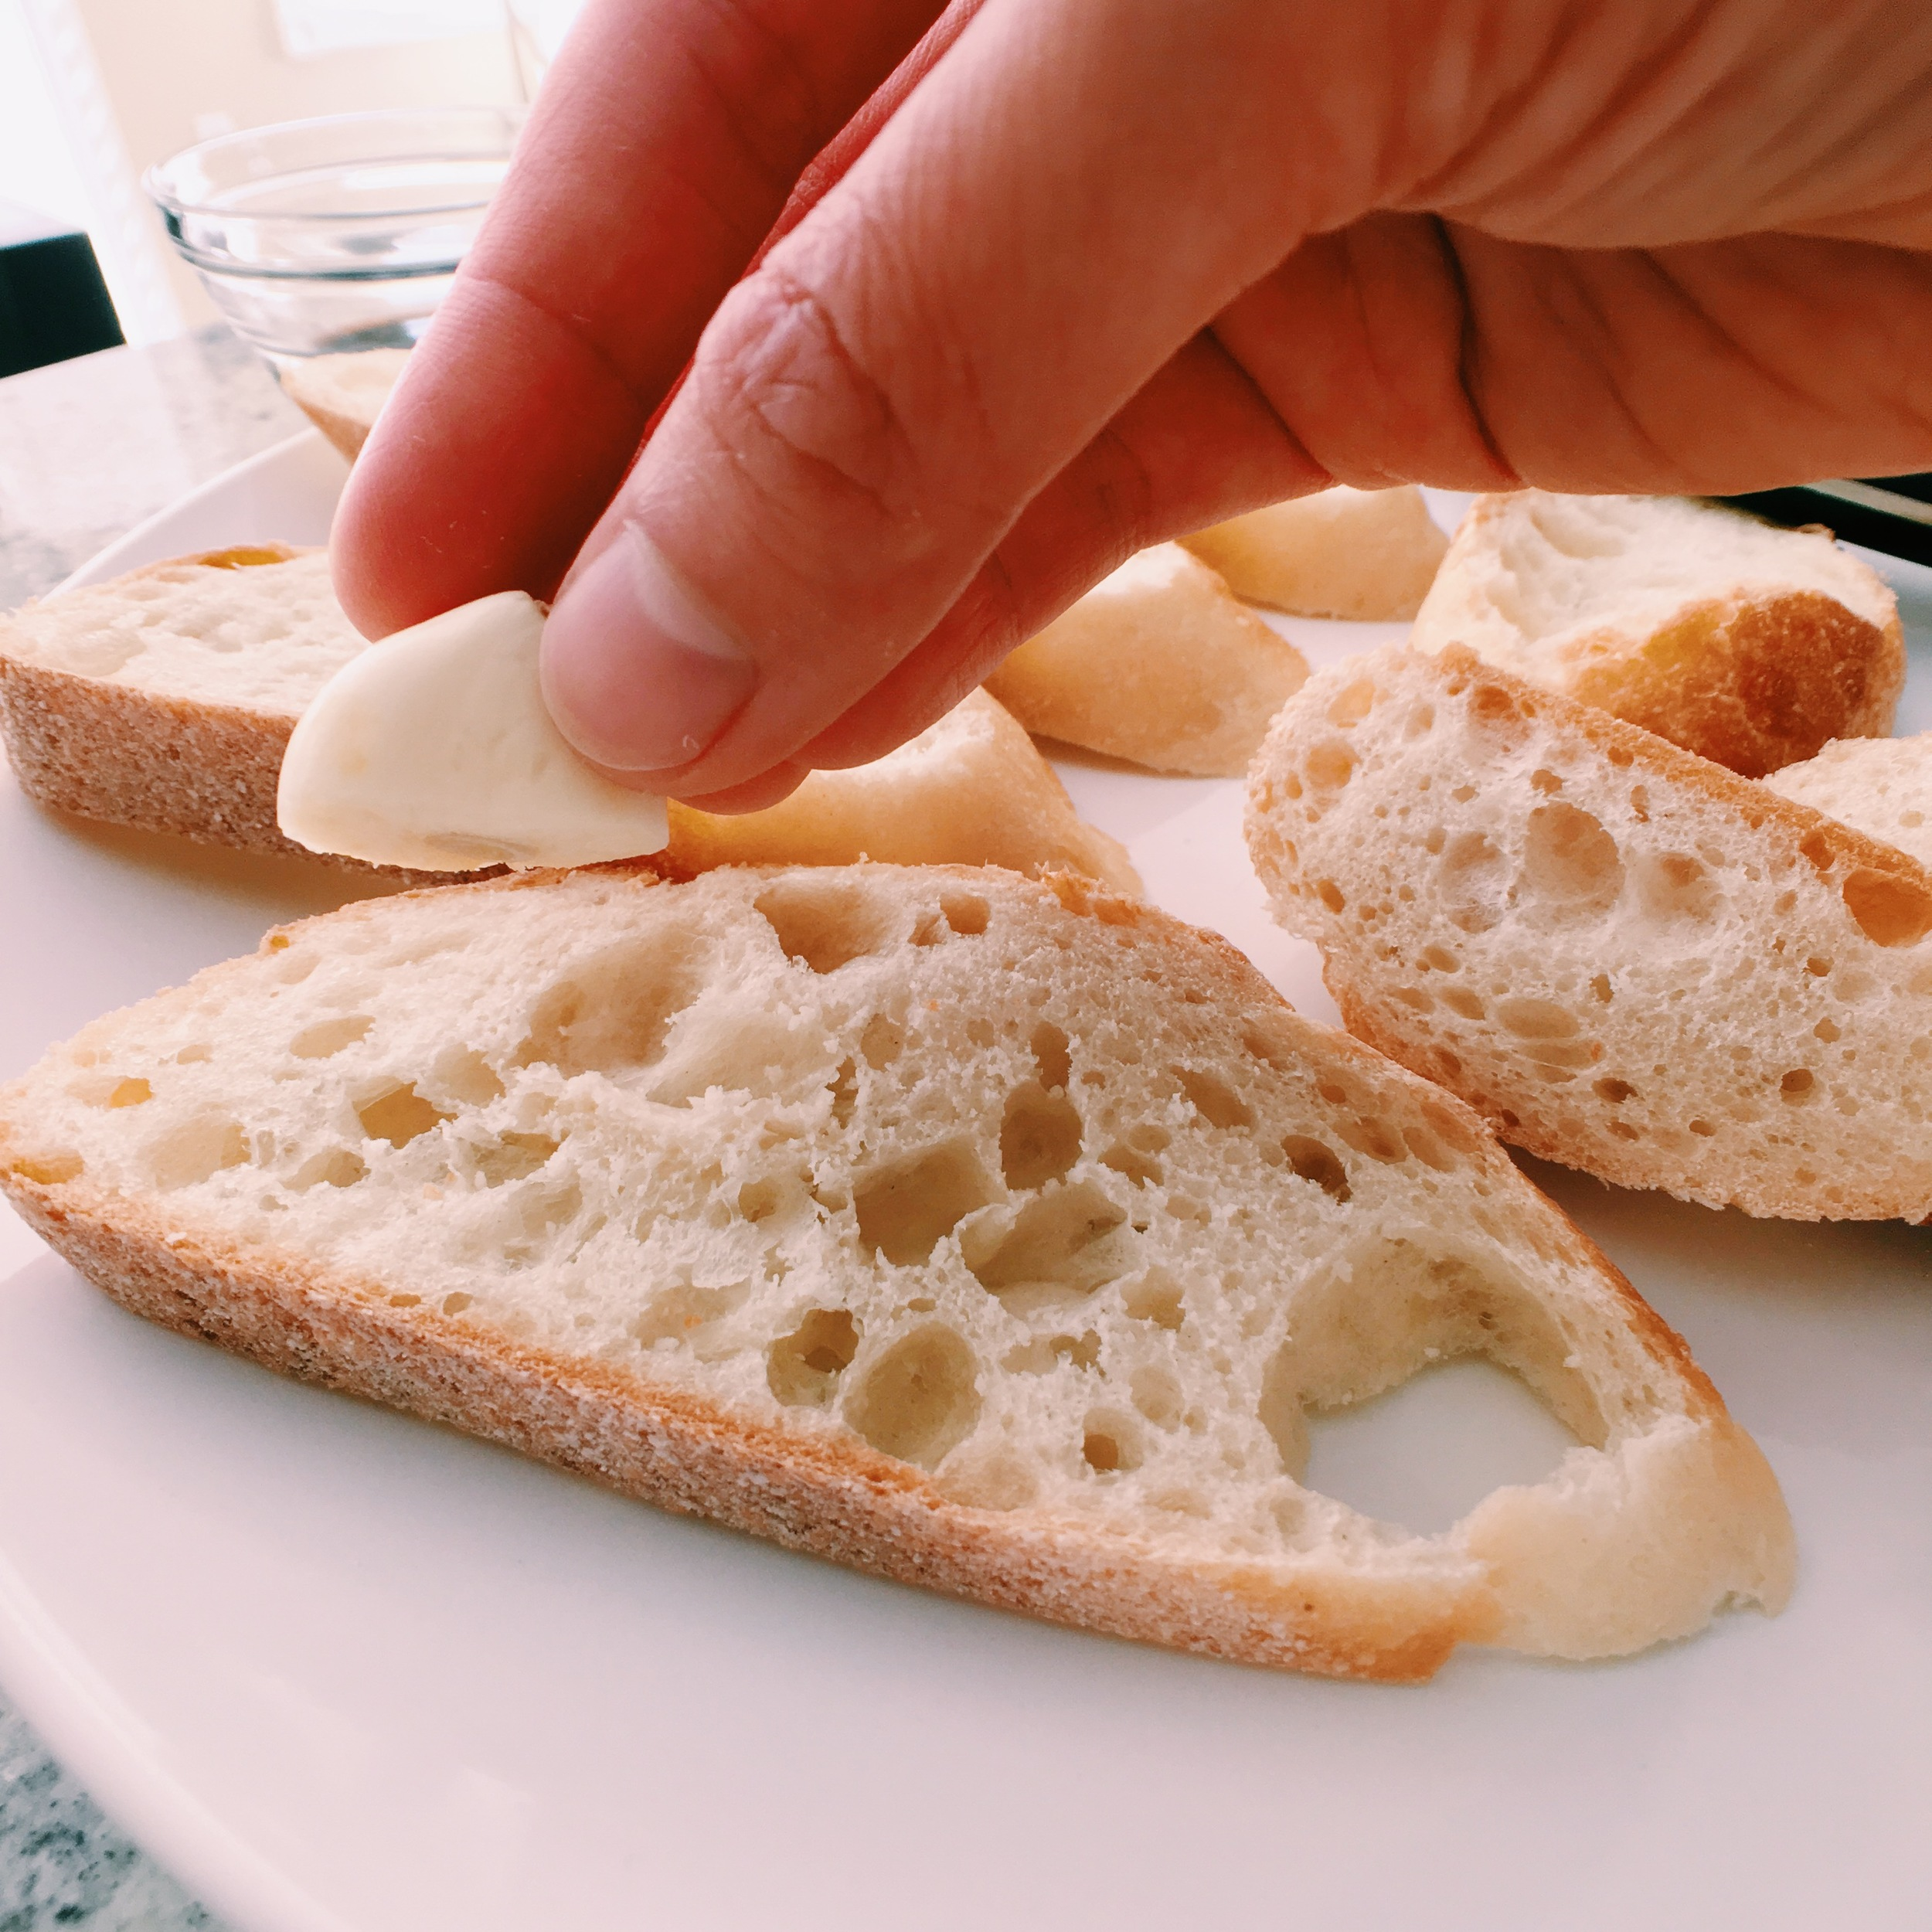 Rubbing garlic onto each baguette slice is the best way to get that garlic flavour into your bruschetta without overpowering it.